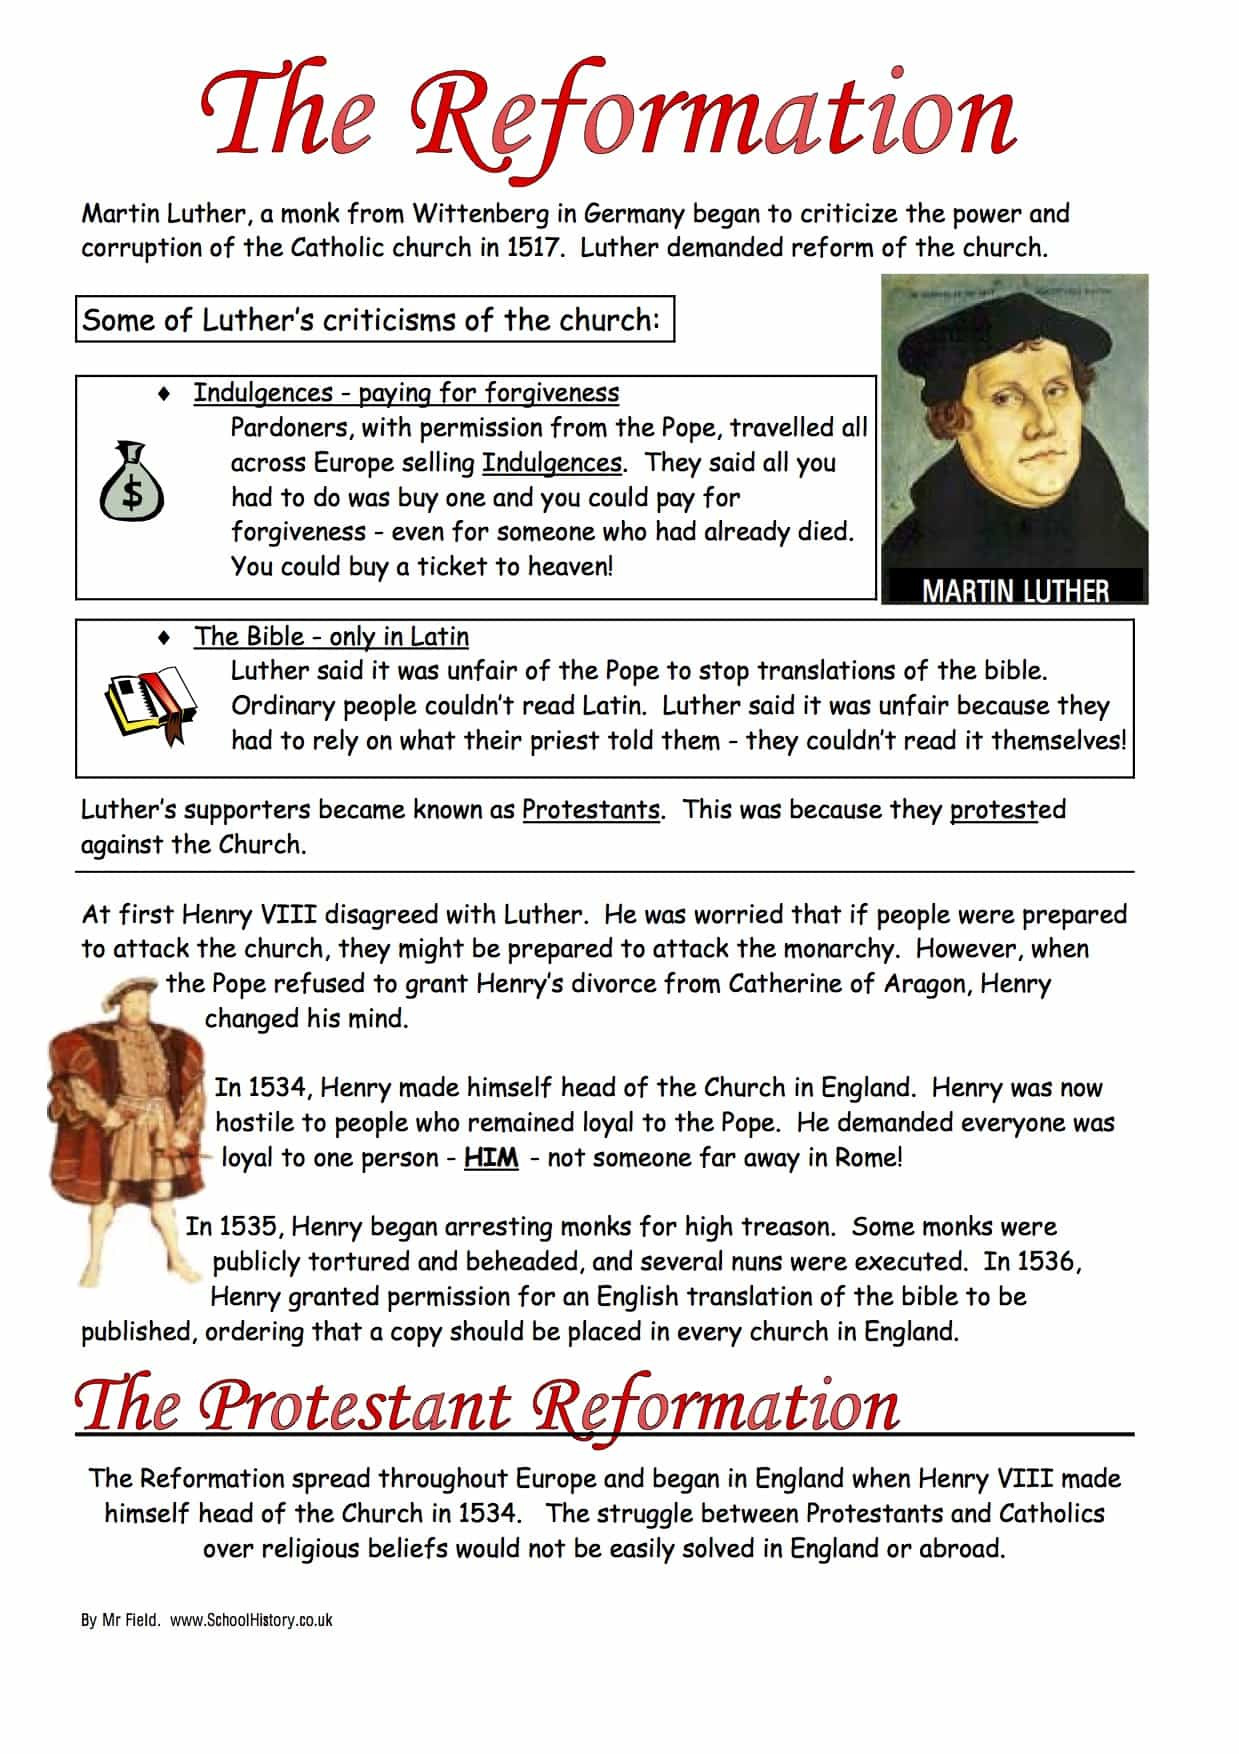 Protestant Reformation Worksheet Answers the Protestant Reformation Worksheet